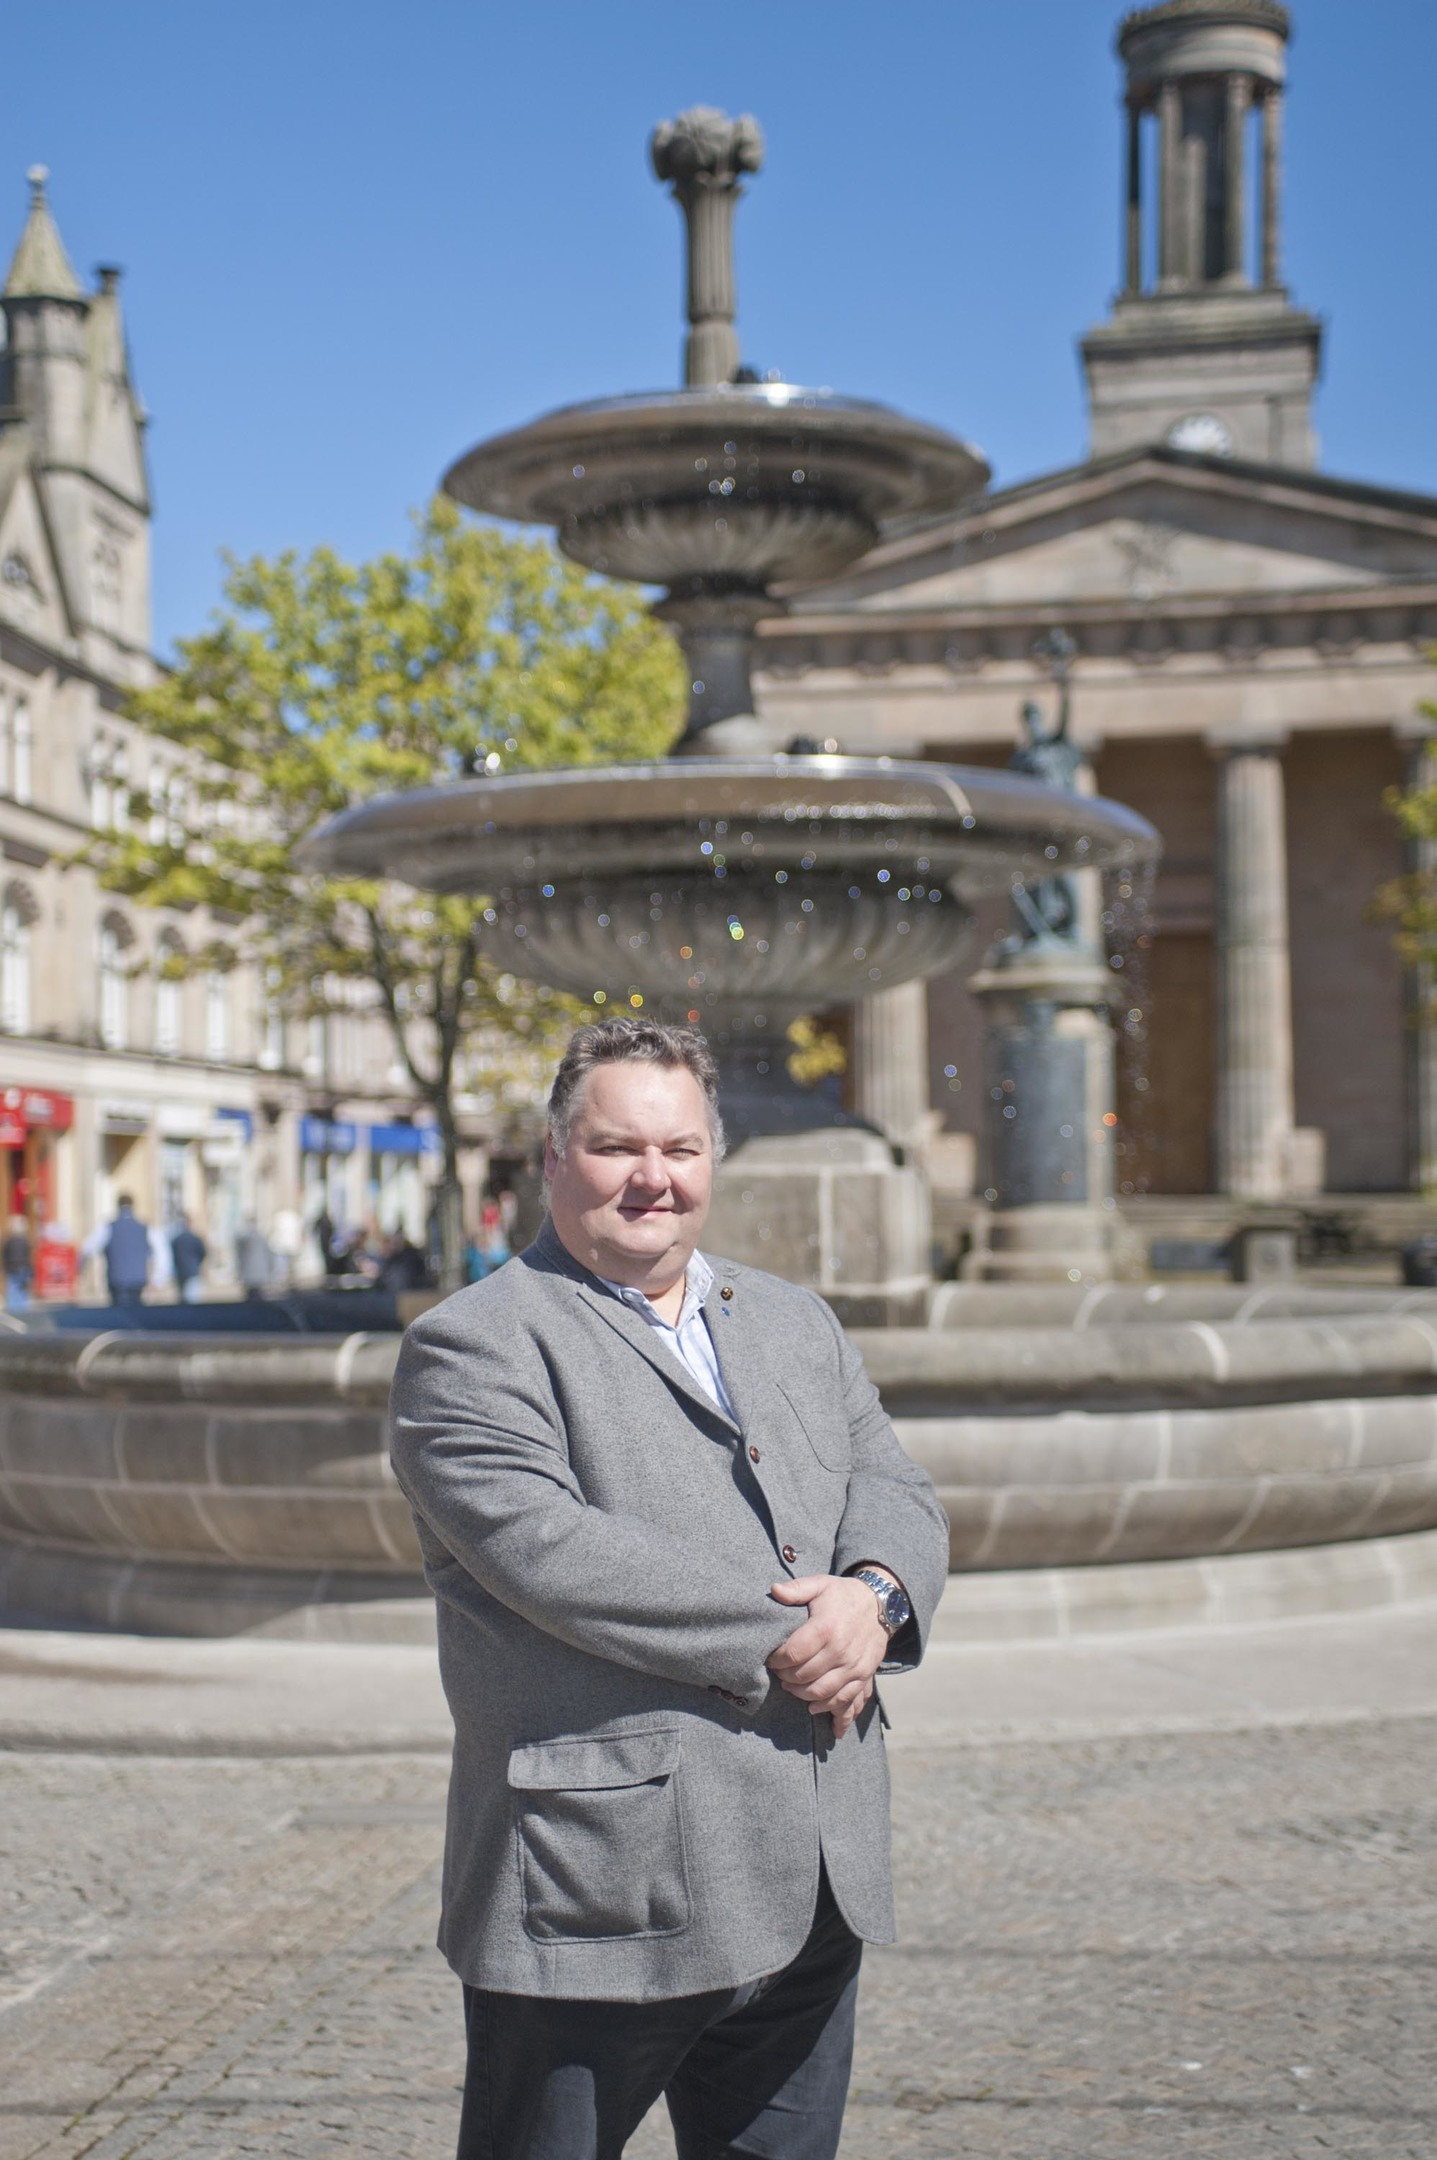 Councillor Graham Leadbitter at the fountain in Elgin.